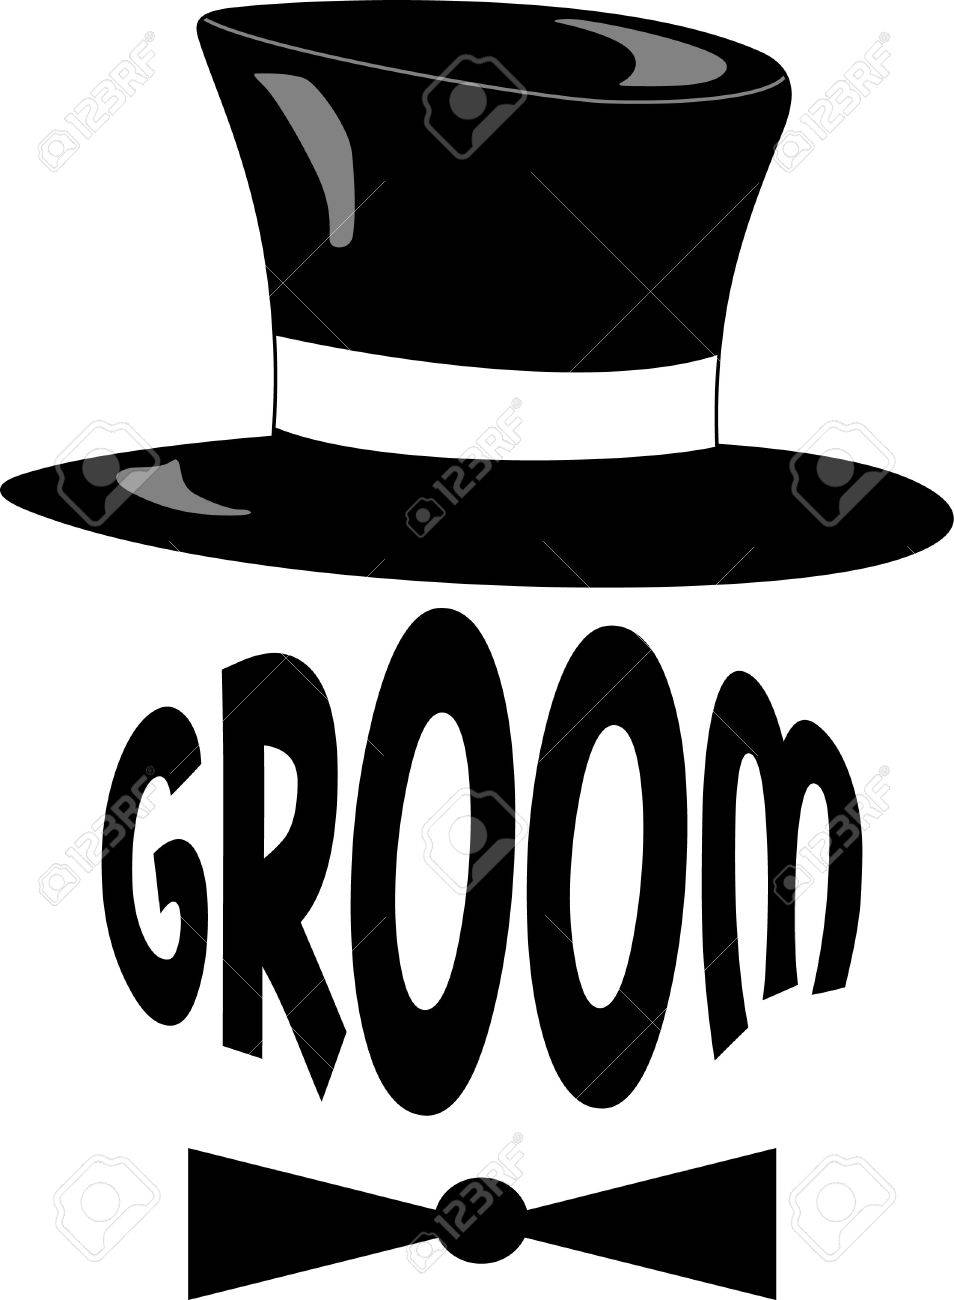 7c22164ebad Planning a bridal shower is so much fun. Give the groom a special shirt to